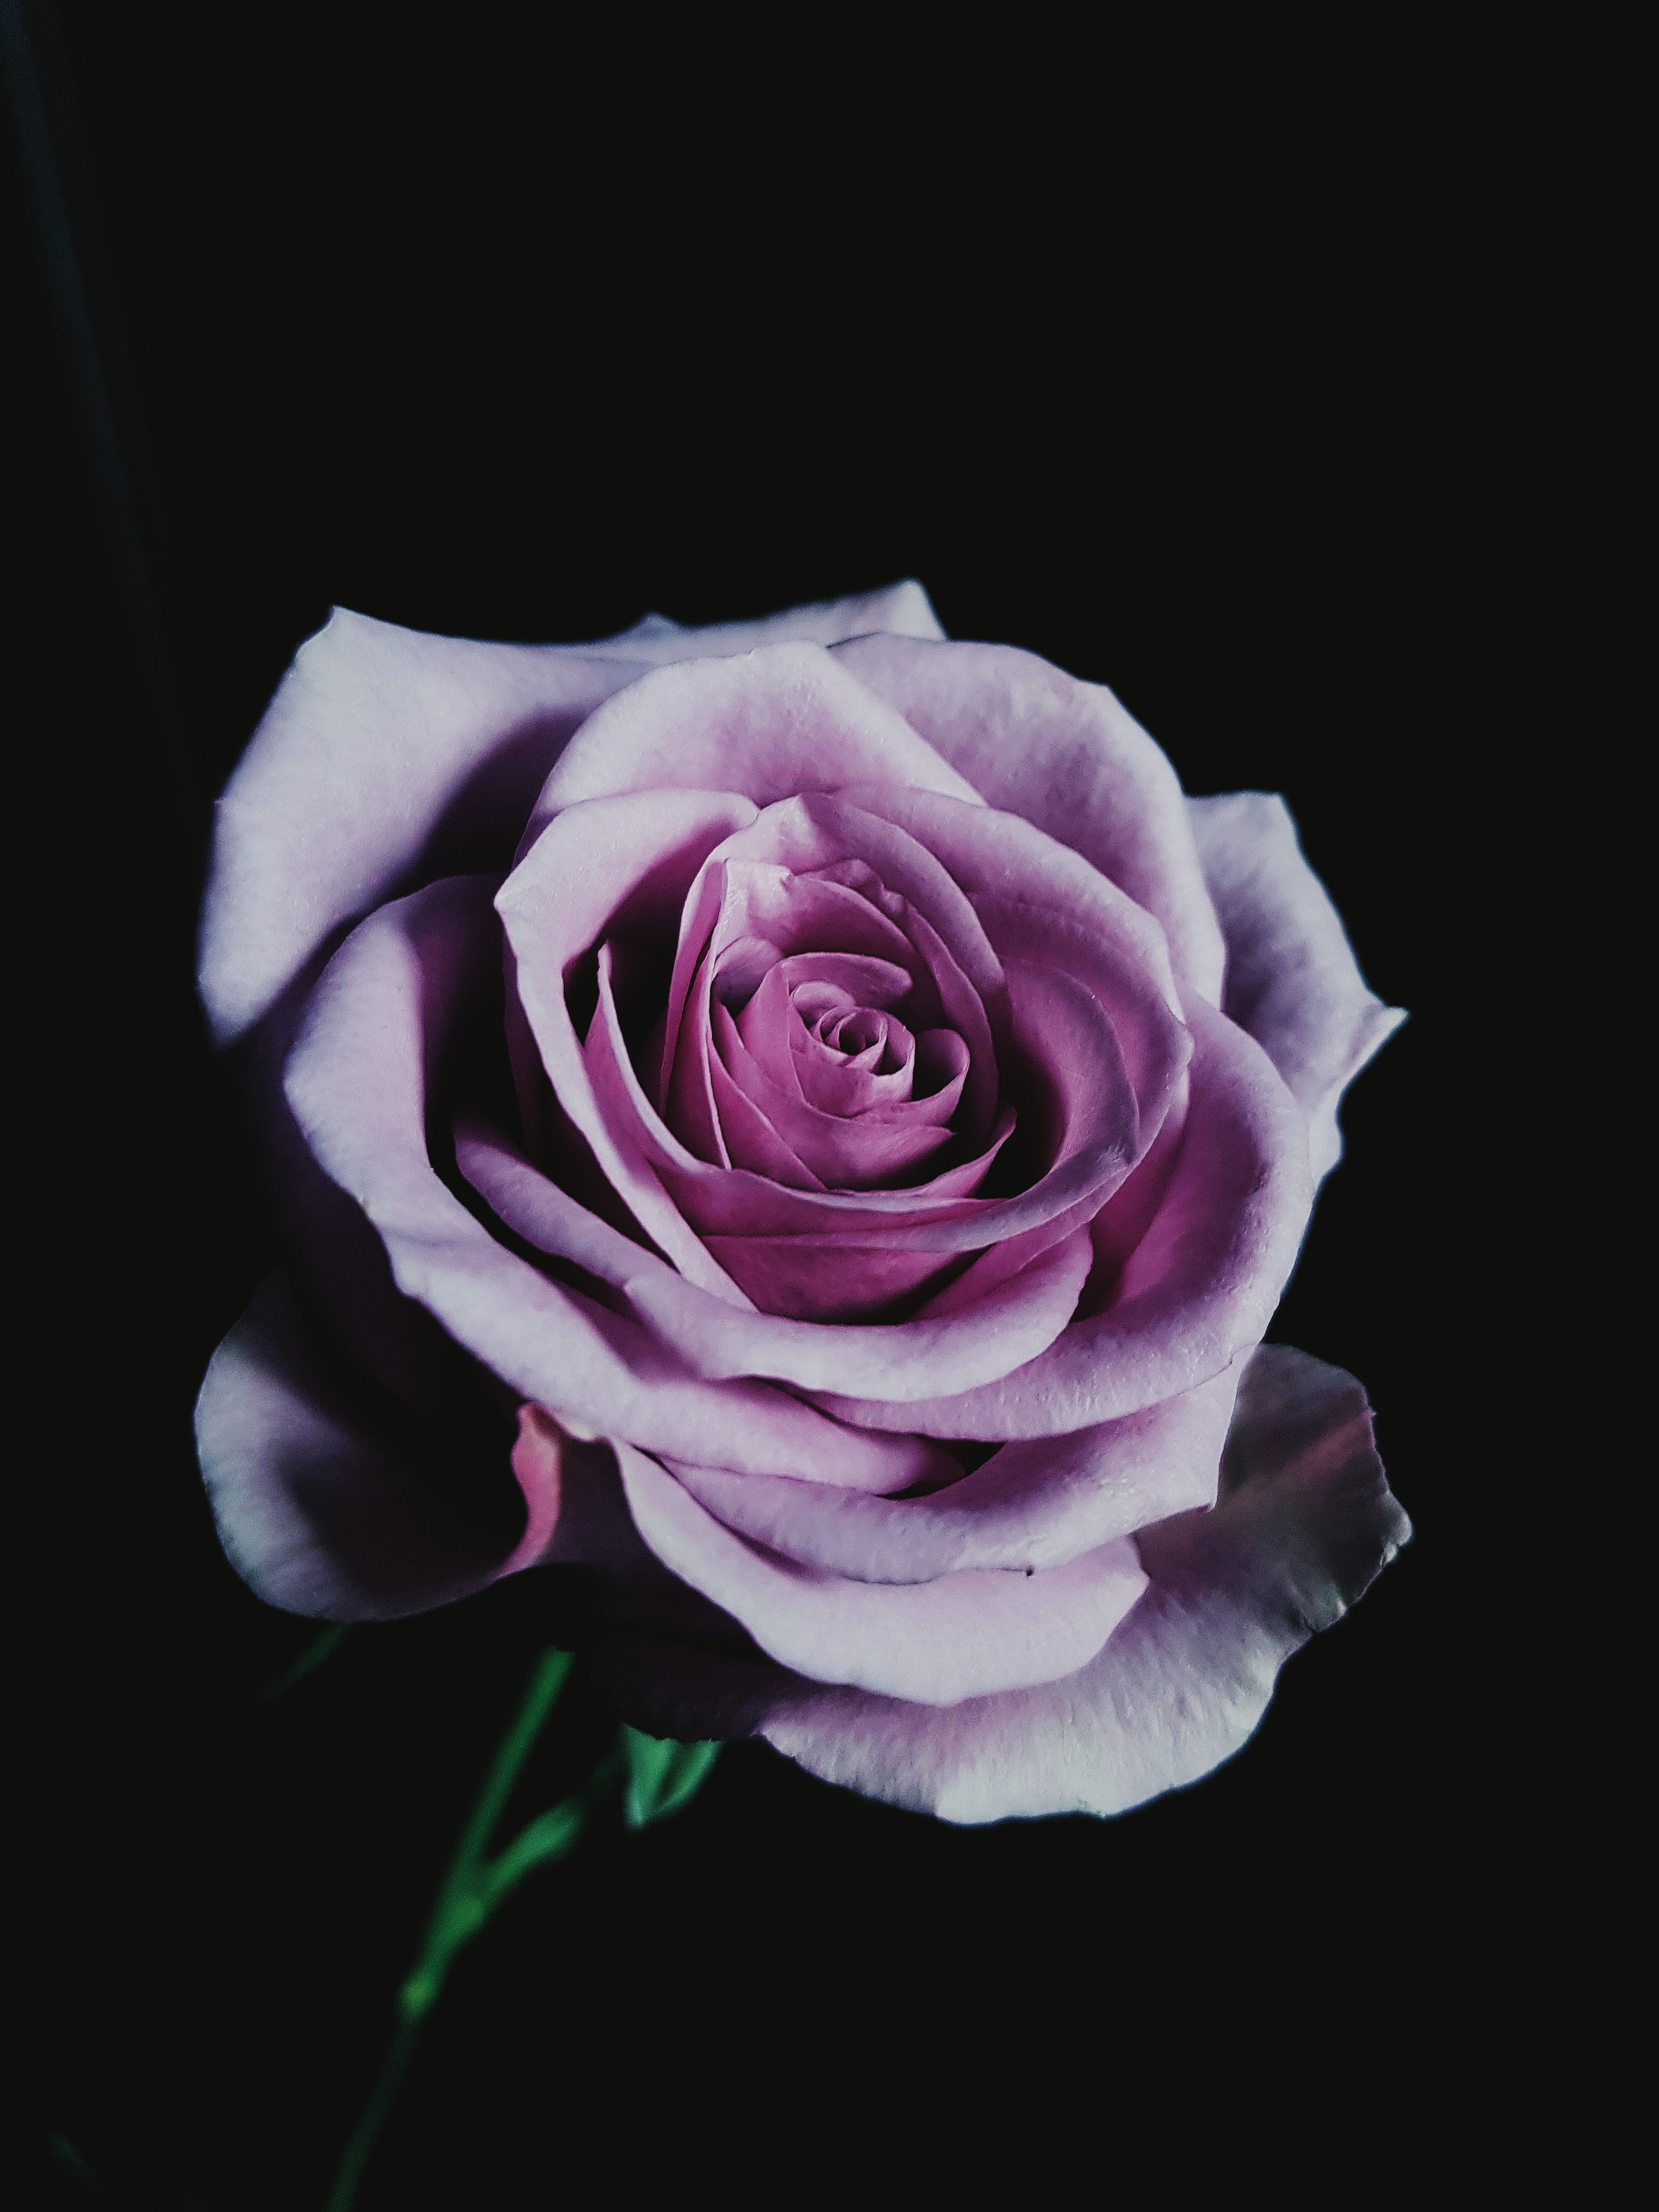 purple petaled rose with dim background